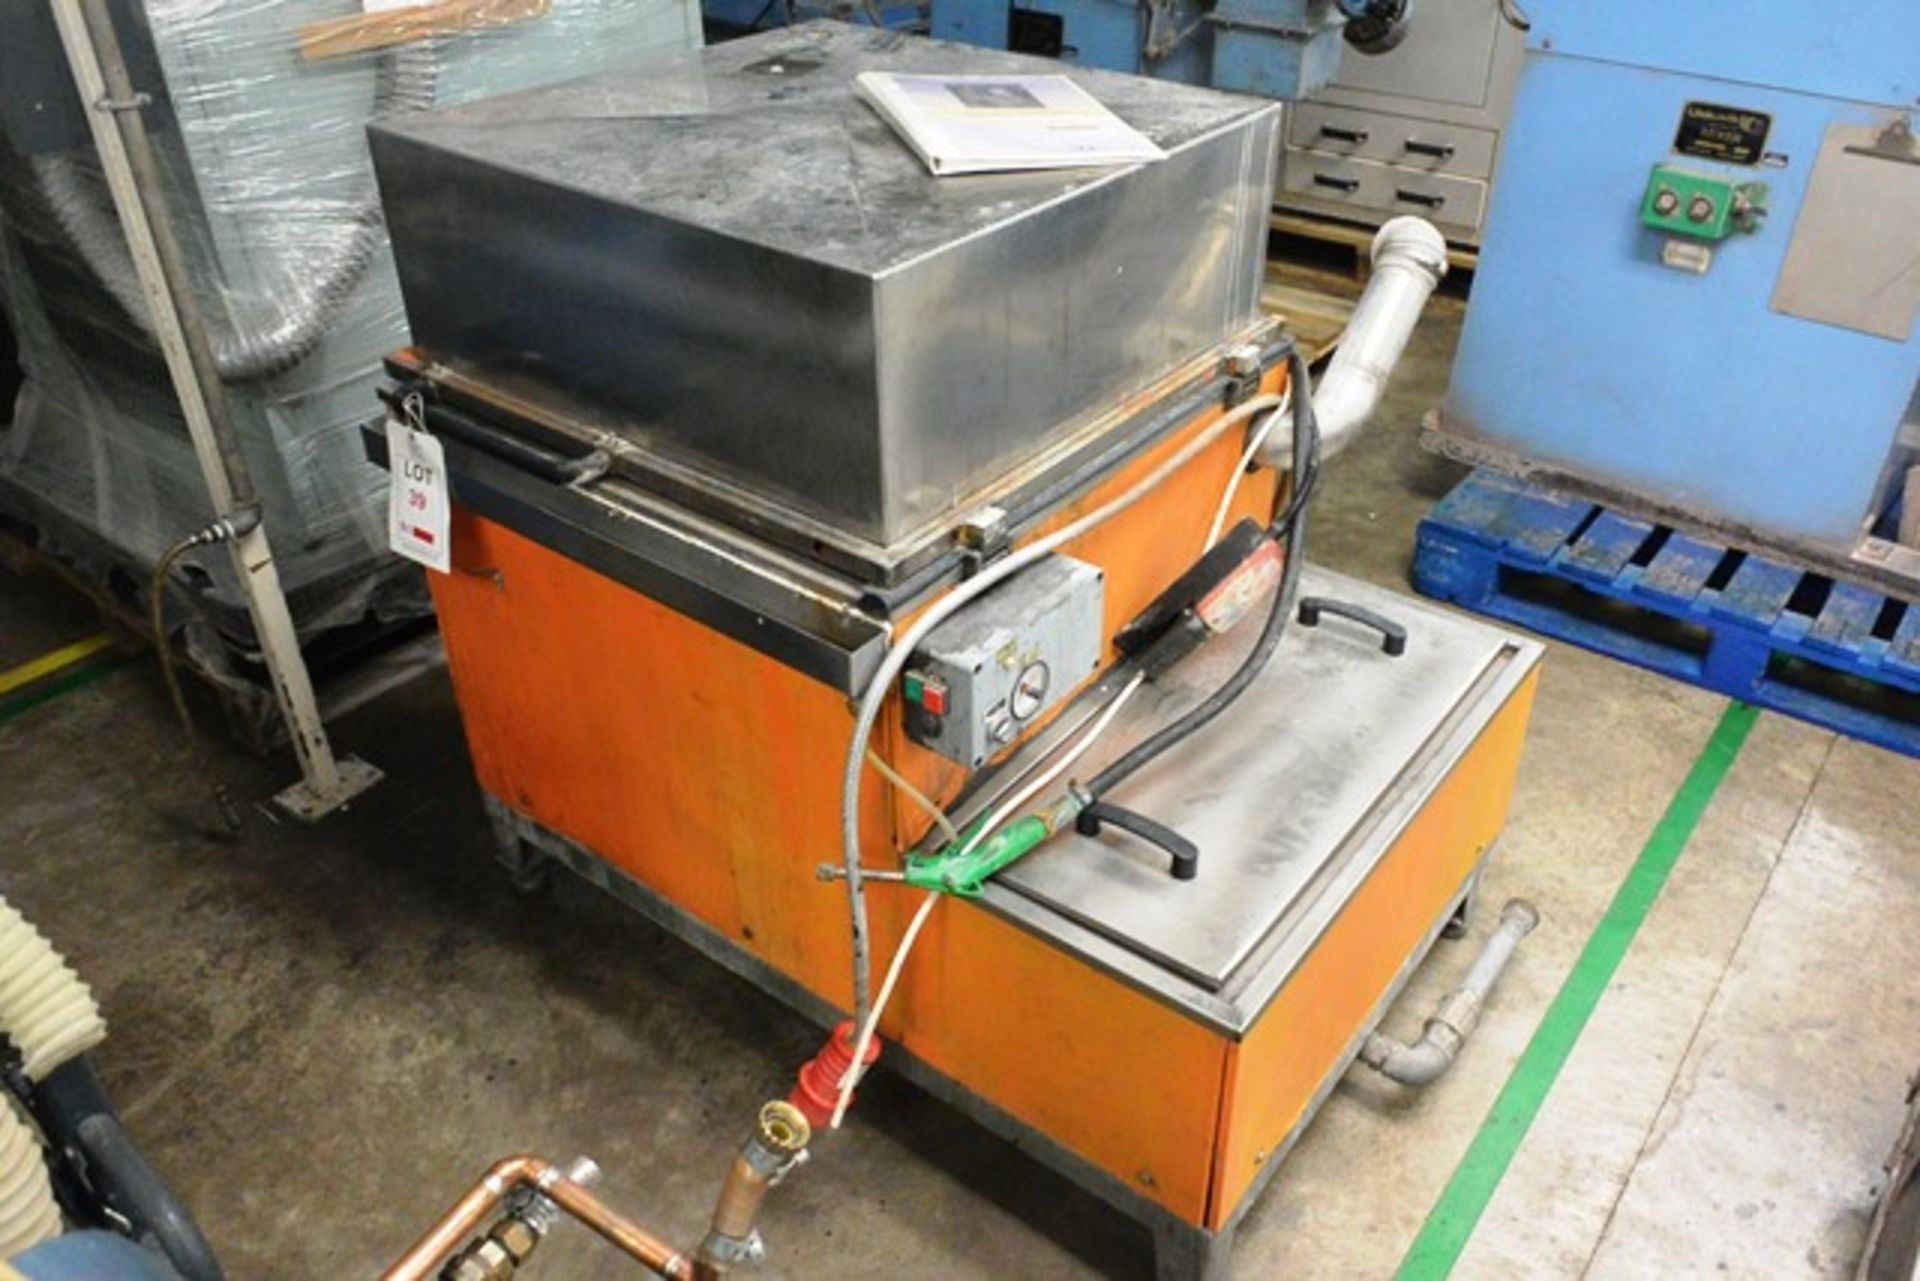 Turbex 800 No. 018545 industrial washer unit, 3 phase (working condition unknown) - Image 2 of 3